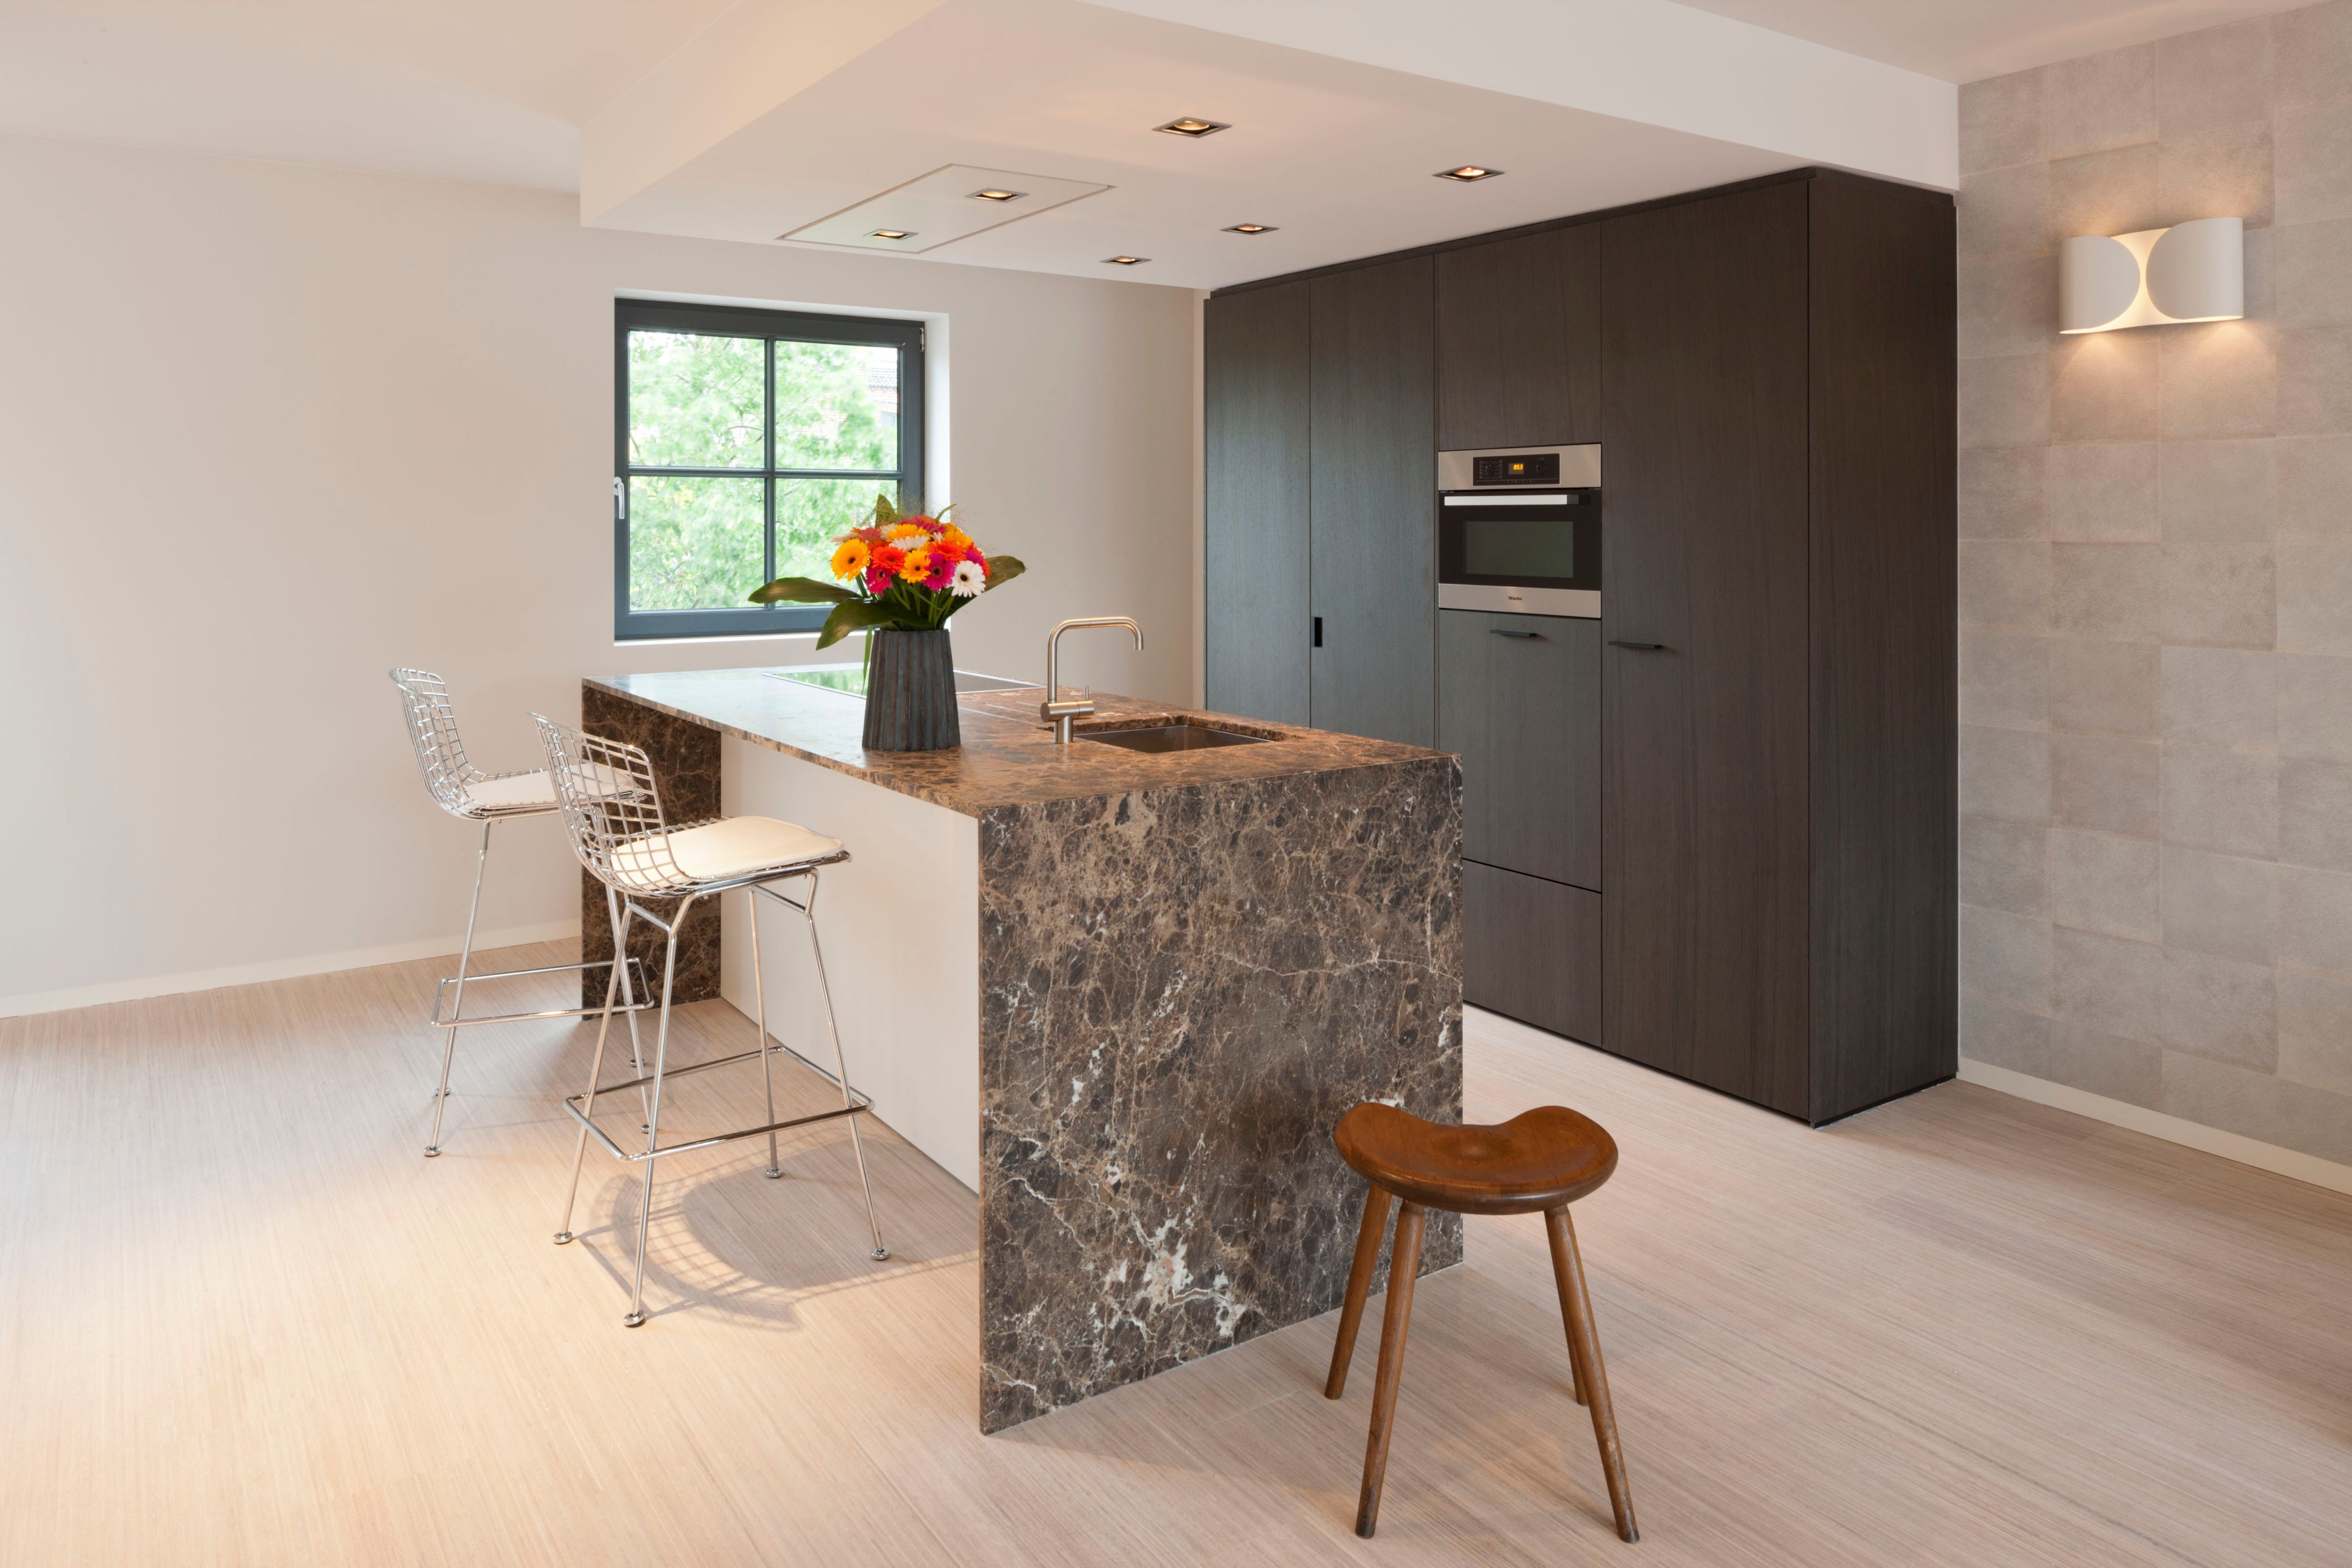 Kitchen by luxhome creation and or realisation of your project